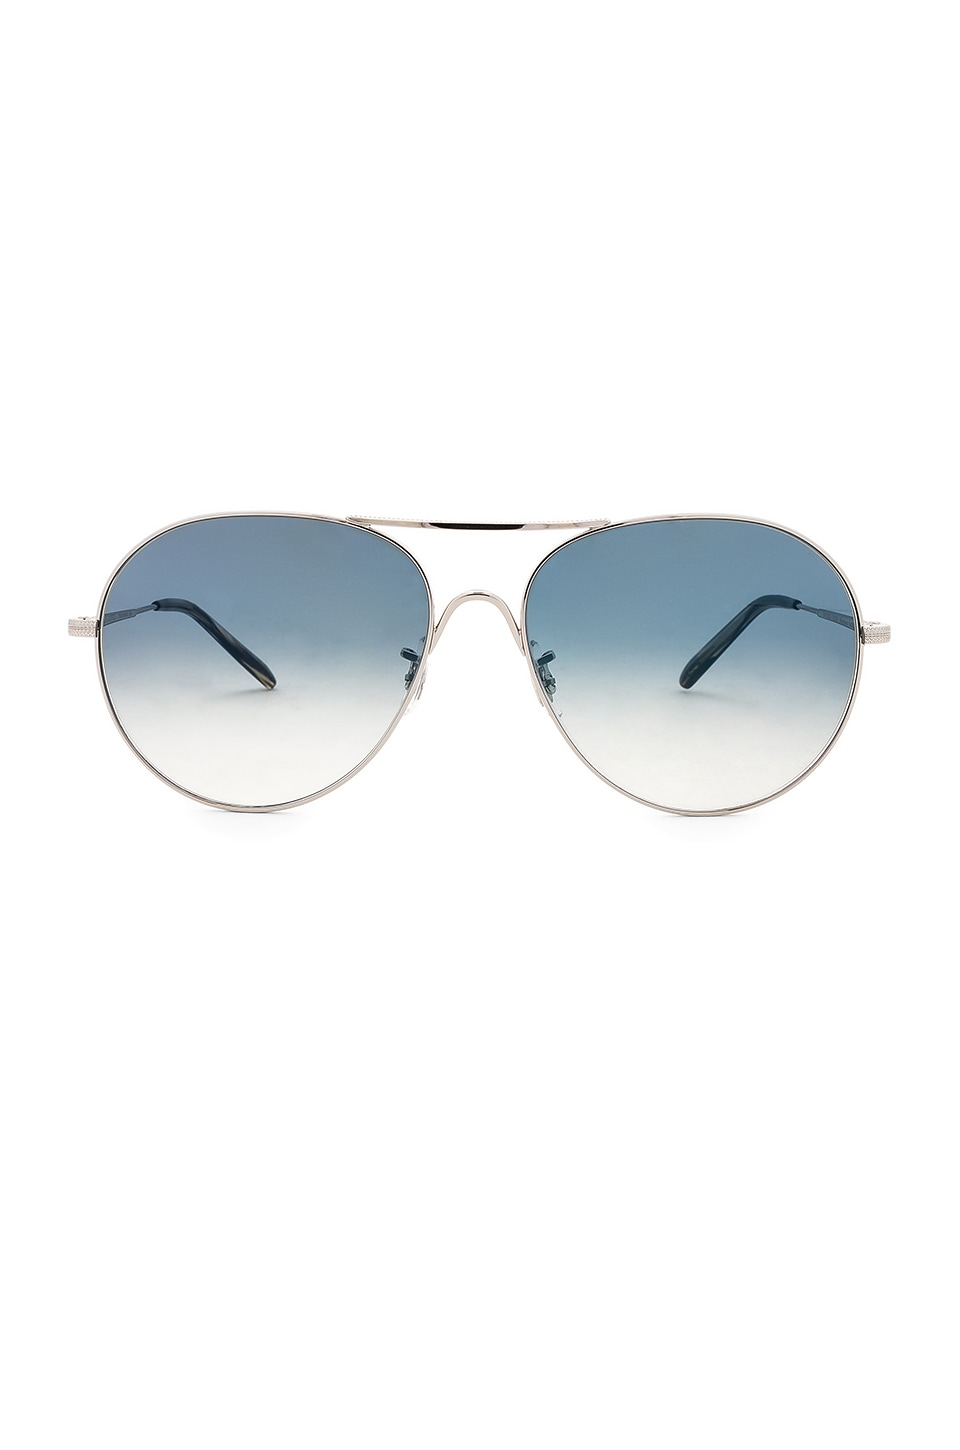 Oliver Peoples Rockmore in Silver & Chrome Sapphire